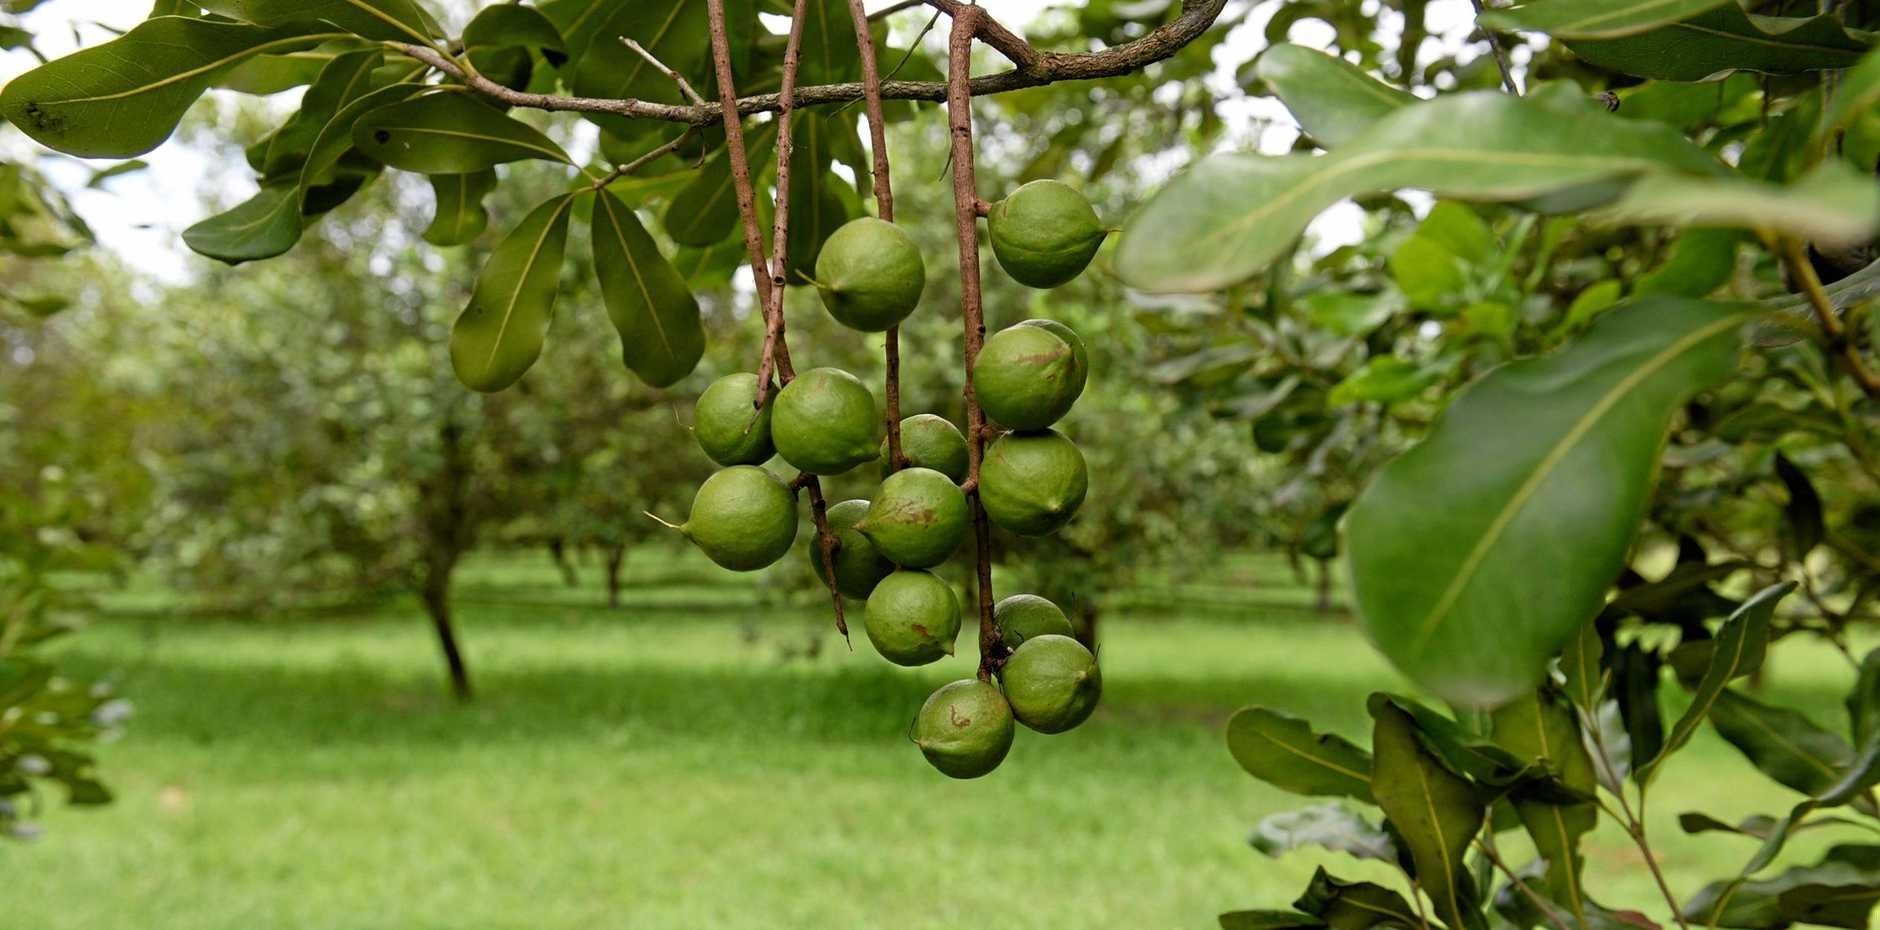 INNAUGURAL EVENT: The first ever national macadamia nursery event is being held in Bundaberg today.